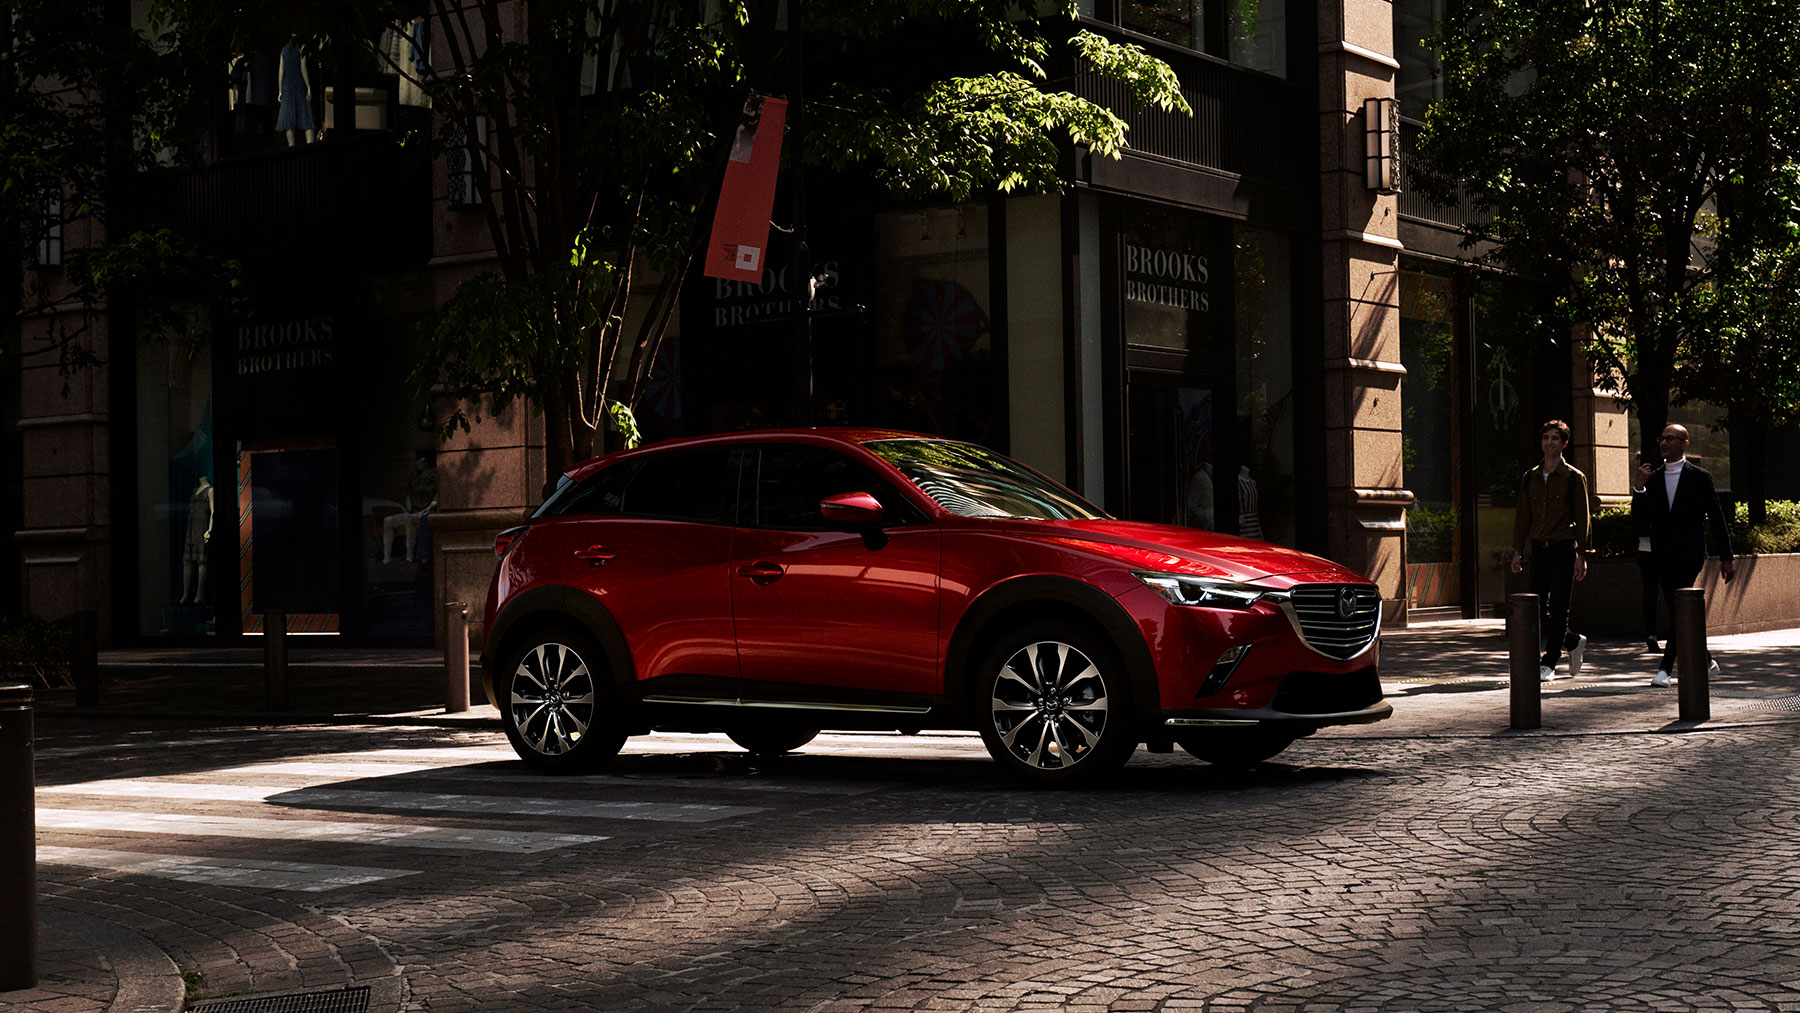 2019 Mazda CX-3 for Sale in San Antonio, TX